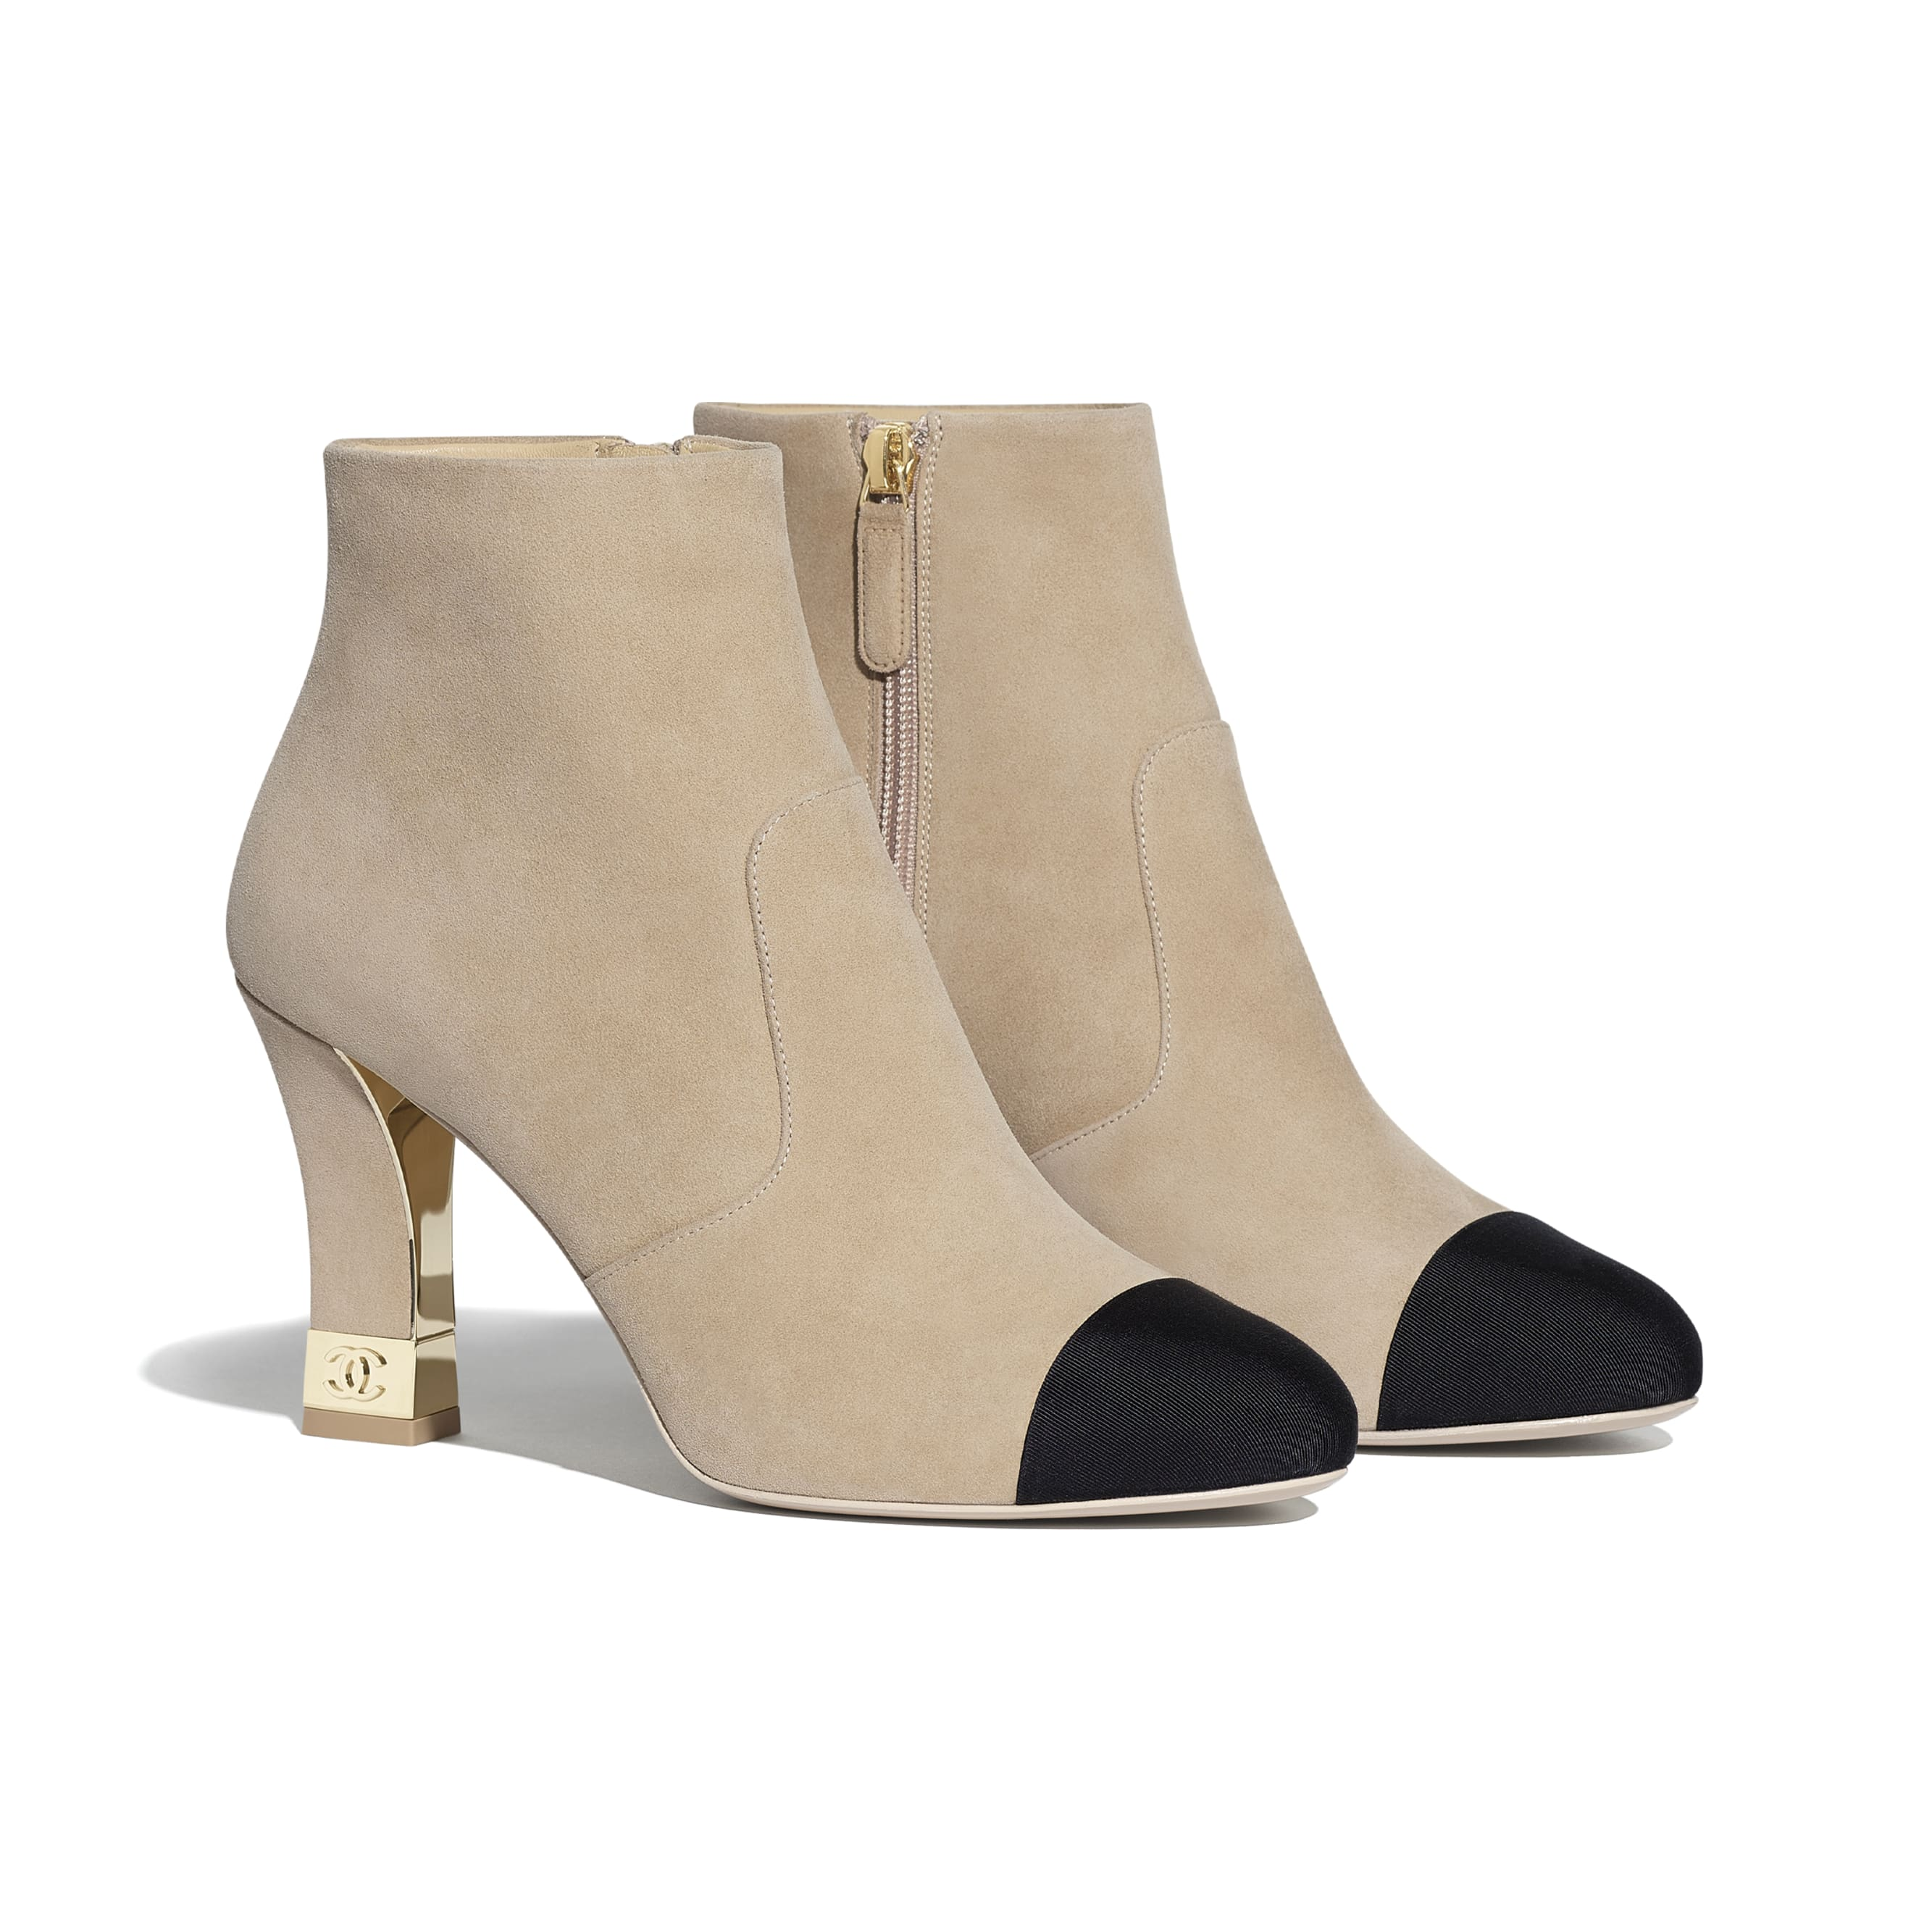 Ankle Boots - Beige & Black - Suede Kidskin & Grosgrain - CHANEL - Alternative view - see standard sized version